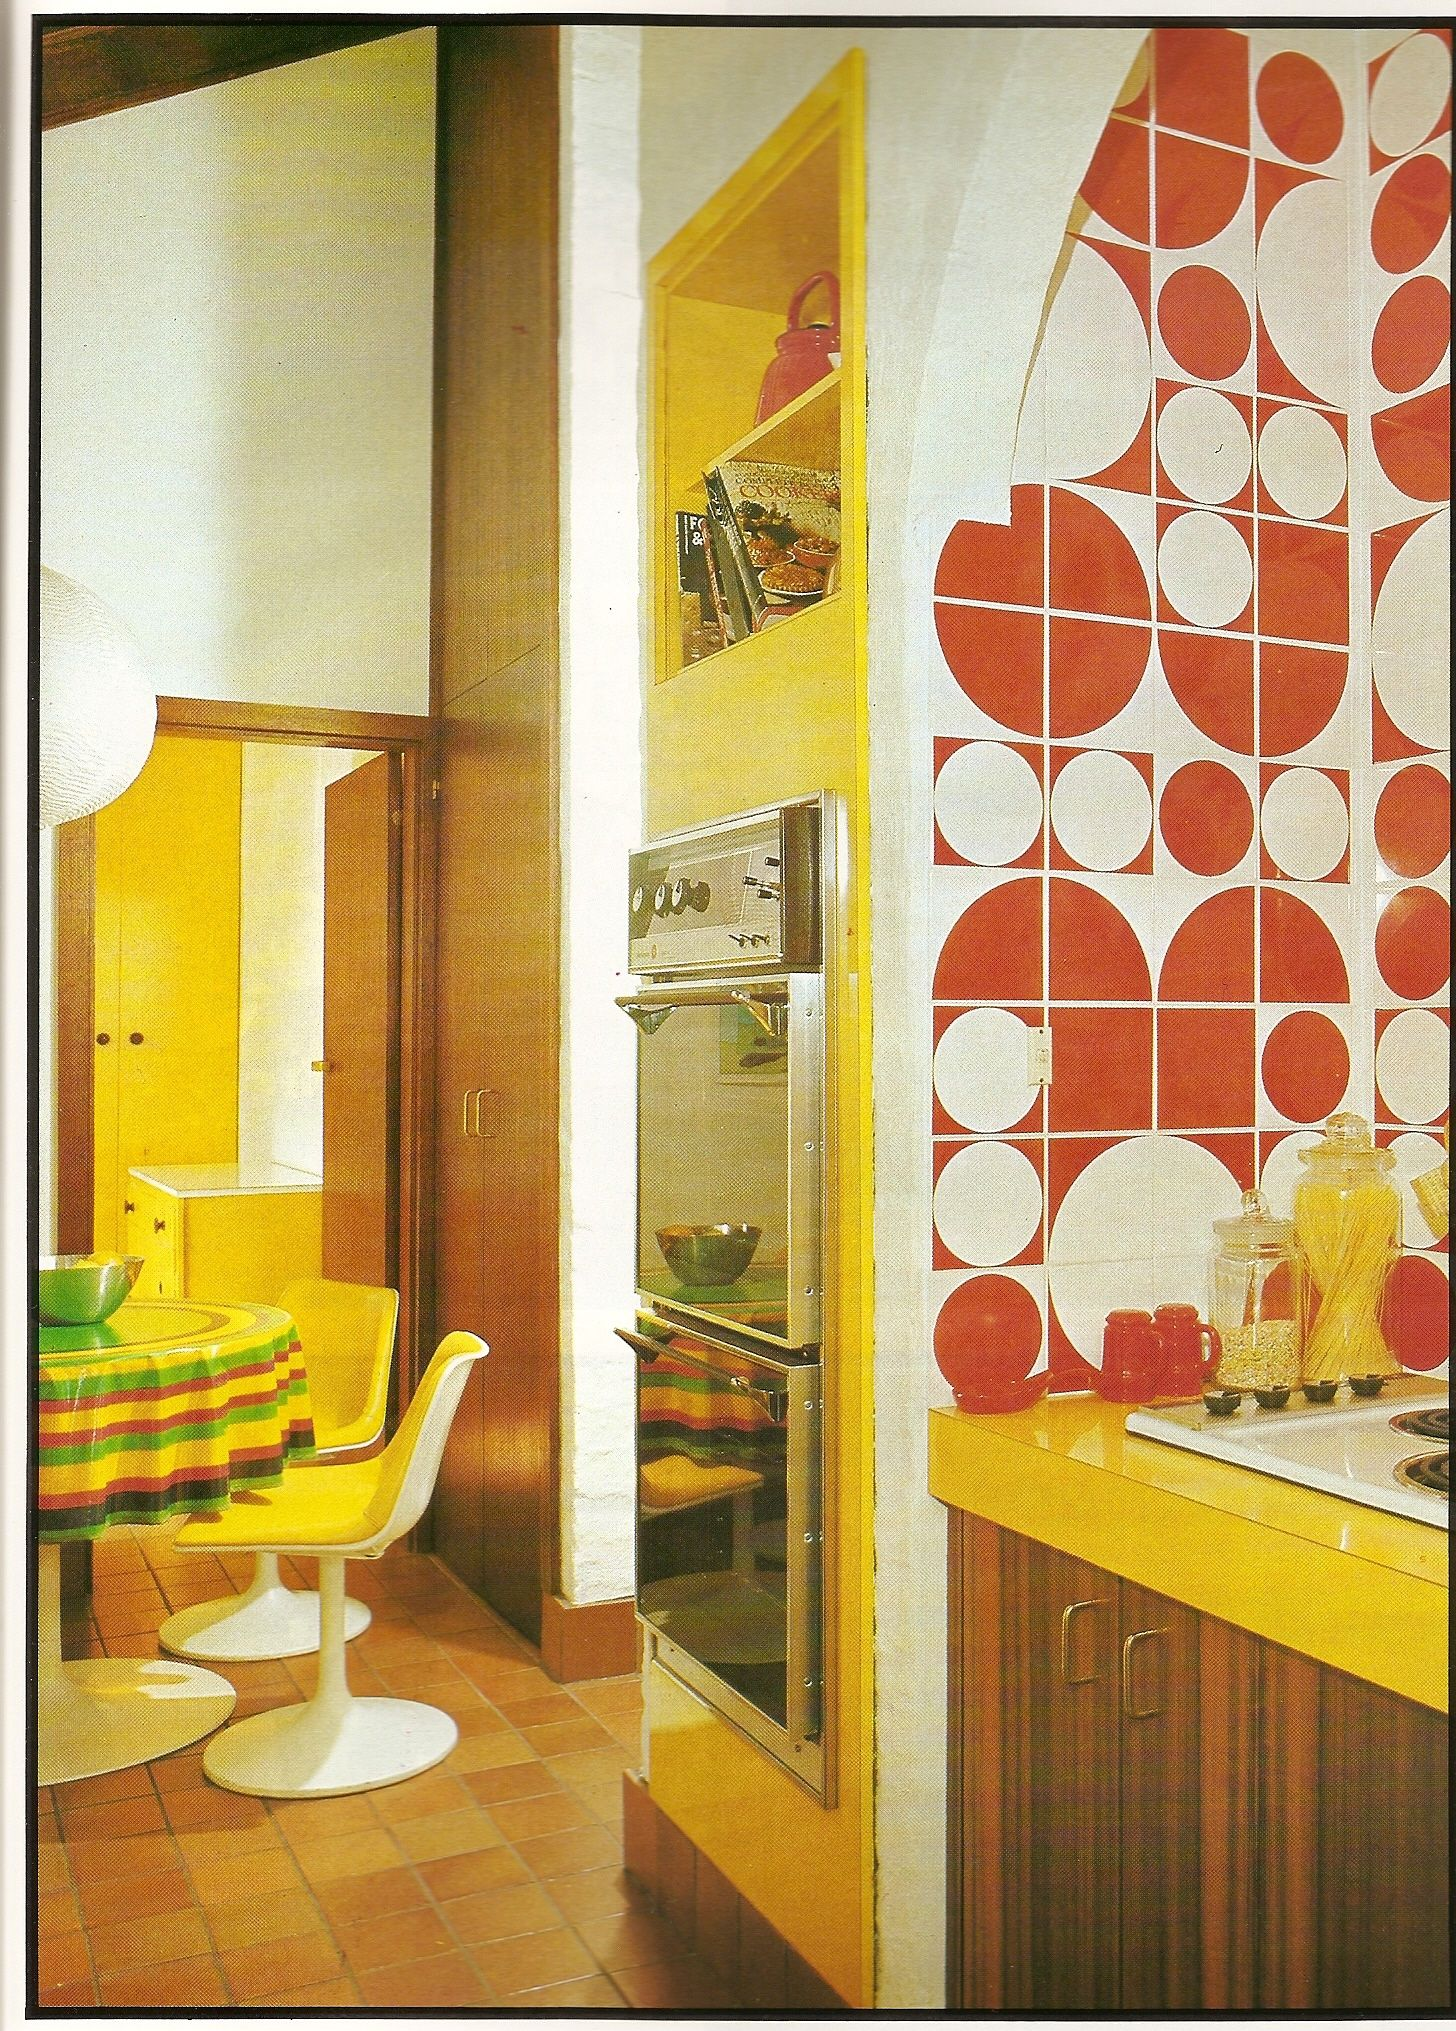 Contiguous \'70s kitchenette, dining area, bathroom   Palm Springs ...